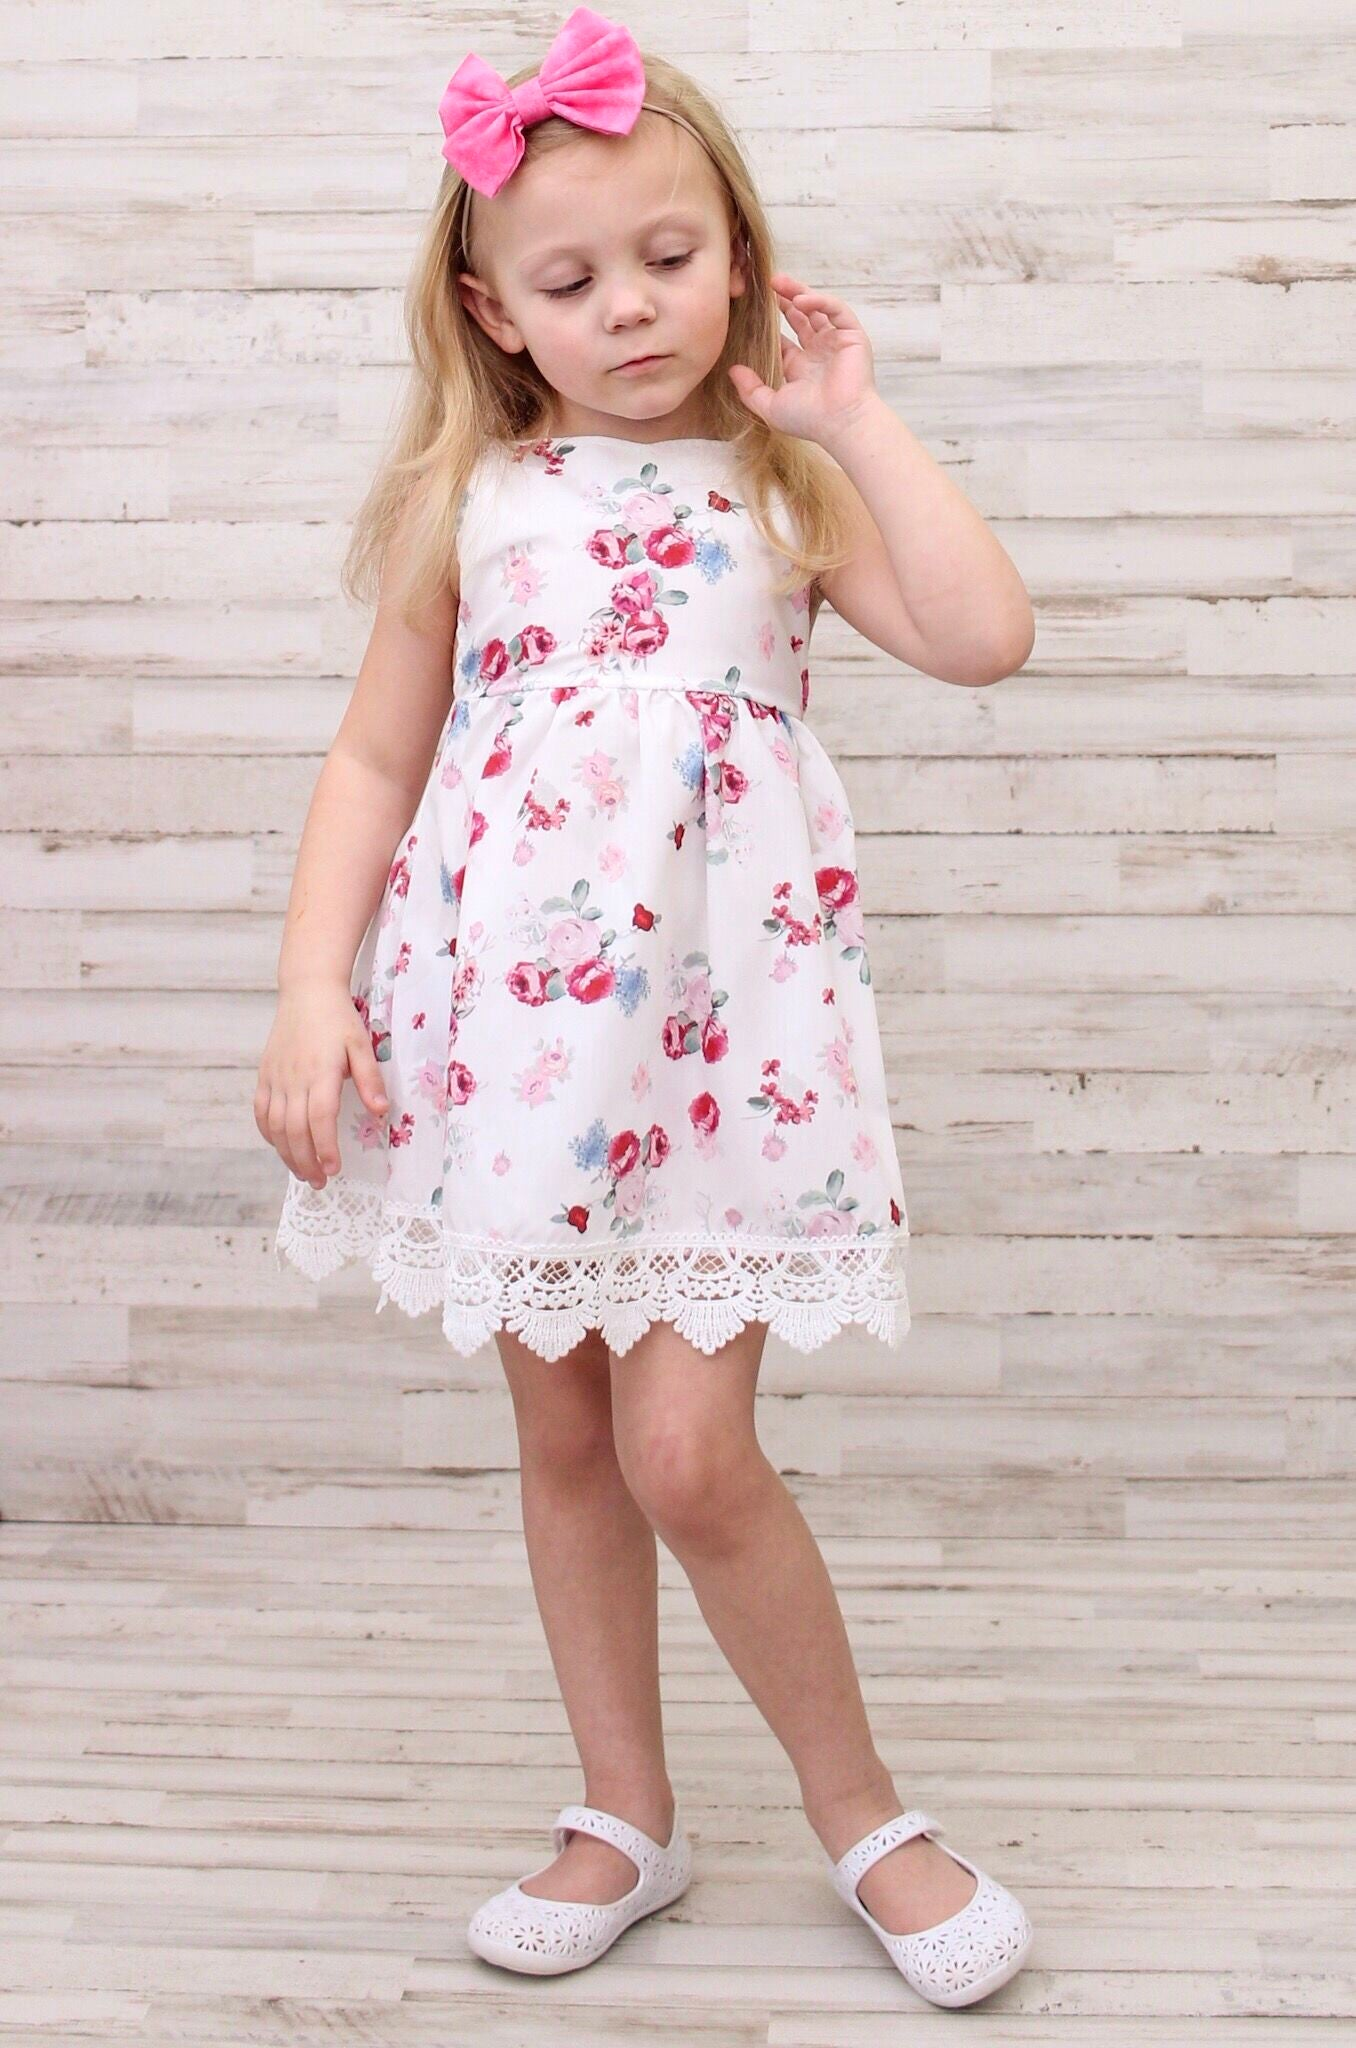 Beautiful Baby Girls Boutique Floral Lace Spring Dress Perfect For Summer Fun And Parties So Soft And Comfy